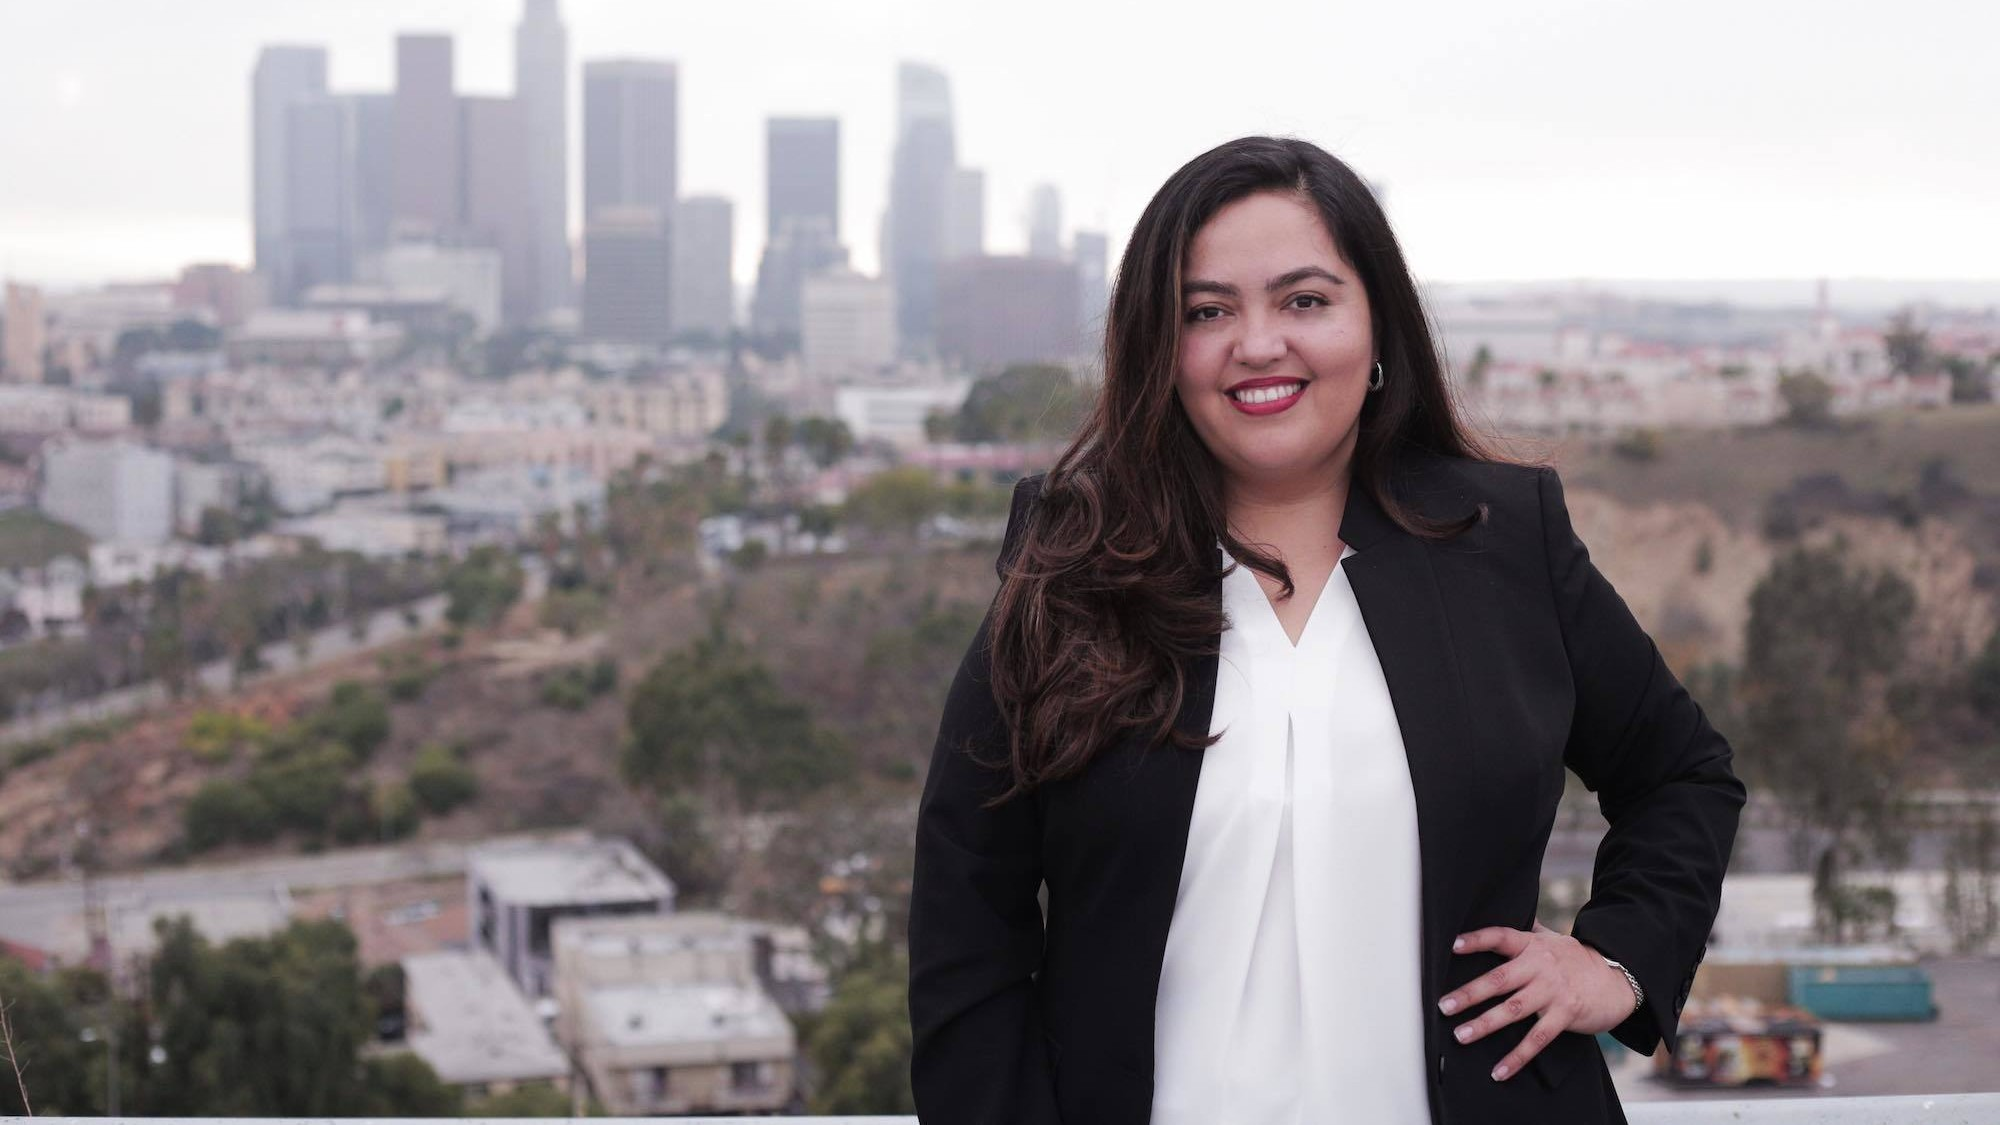 Meet the Former Undocumented Immigrant Running for Congress to Fight Trump